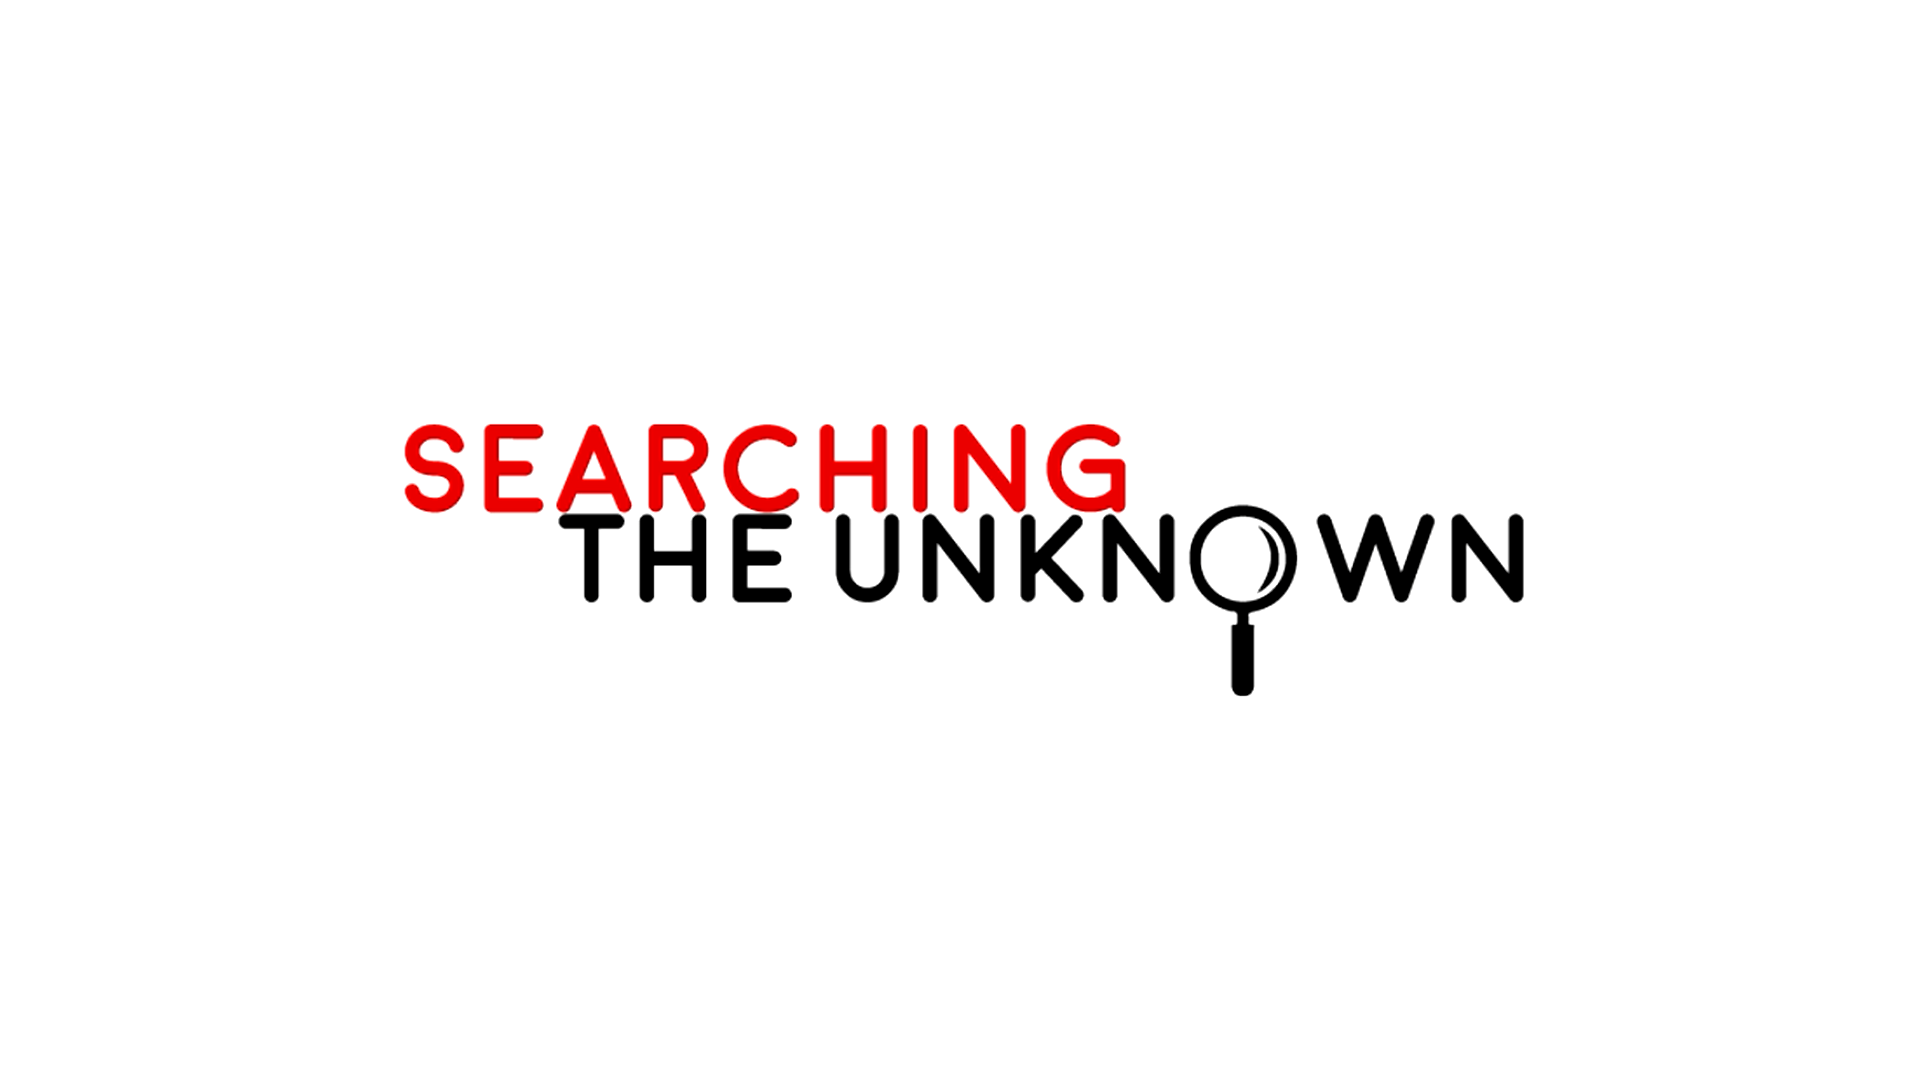 Searching the Unknown